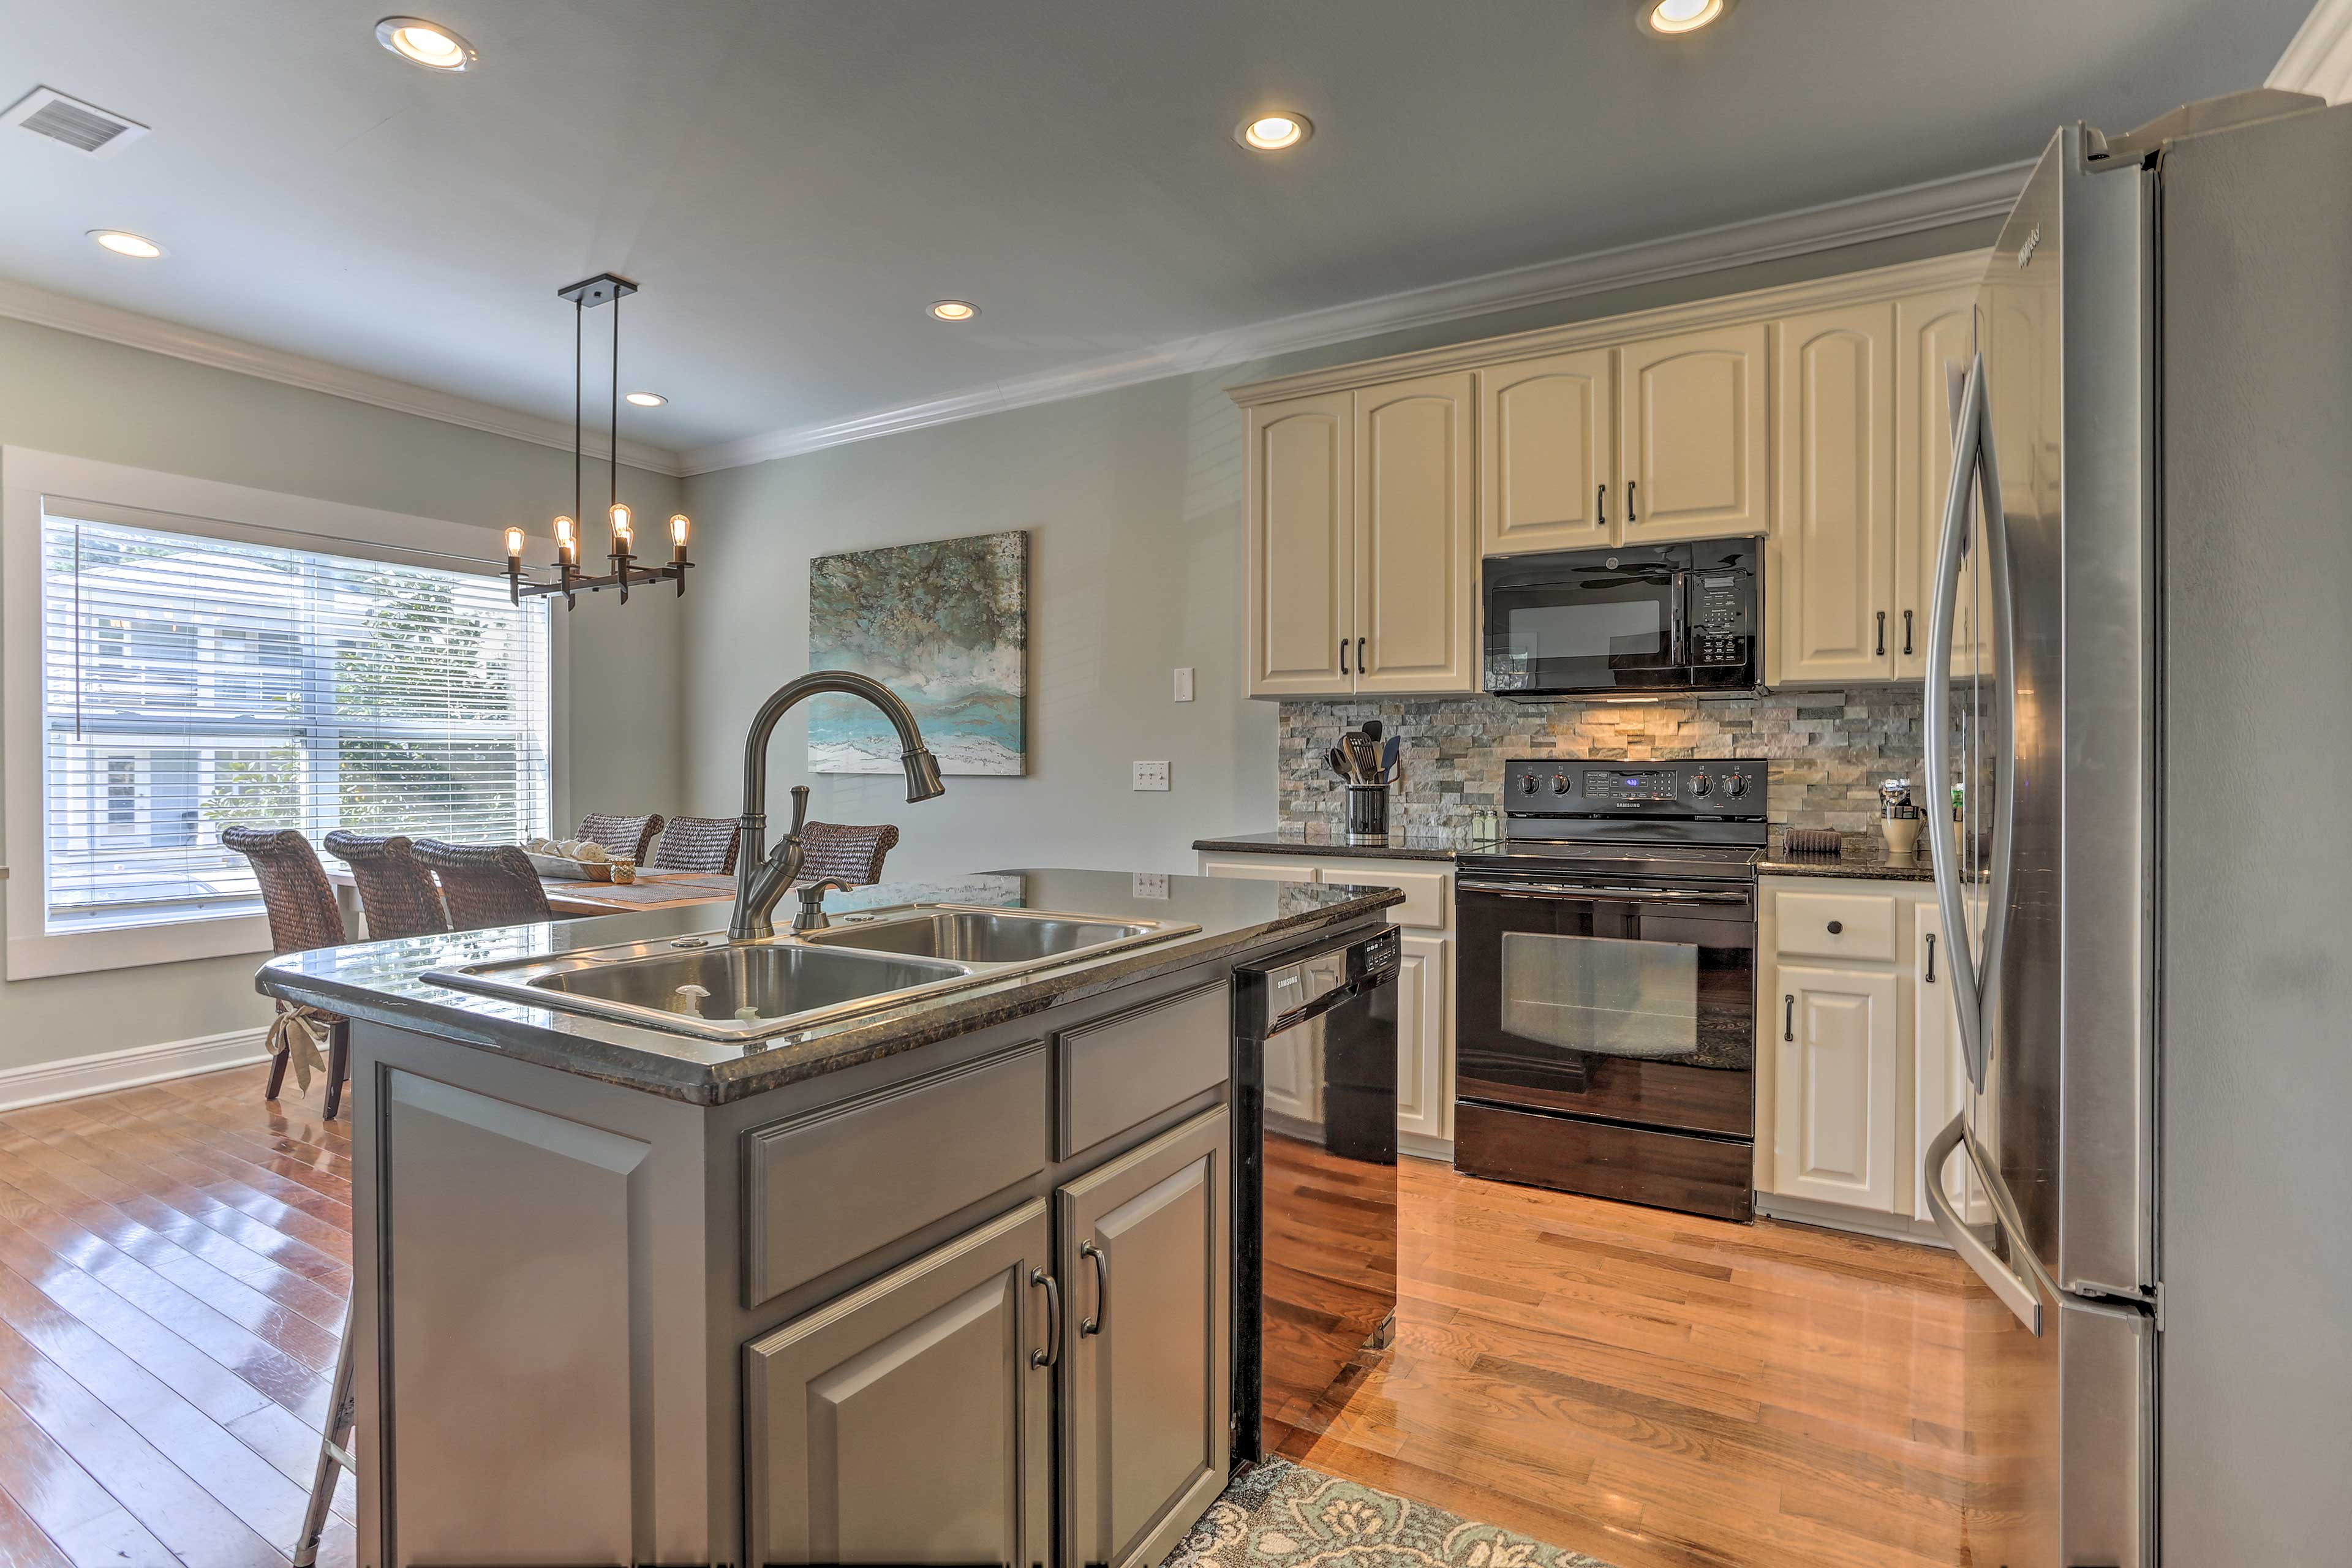 Whip up your favorite meals in the newly renovated kitchen!